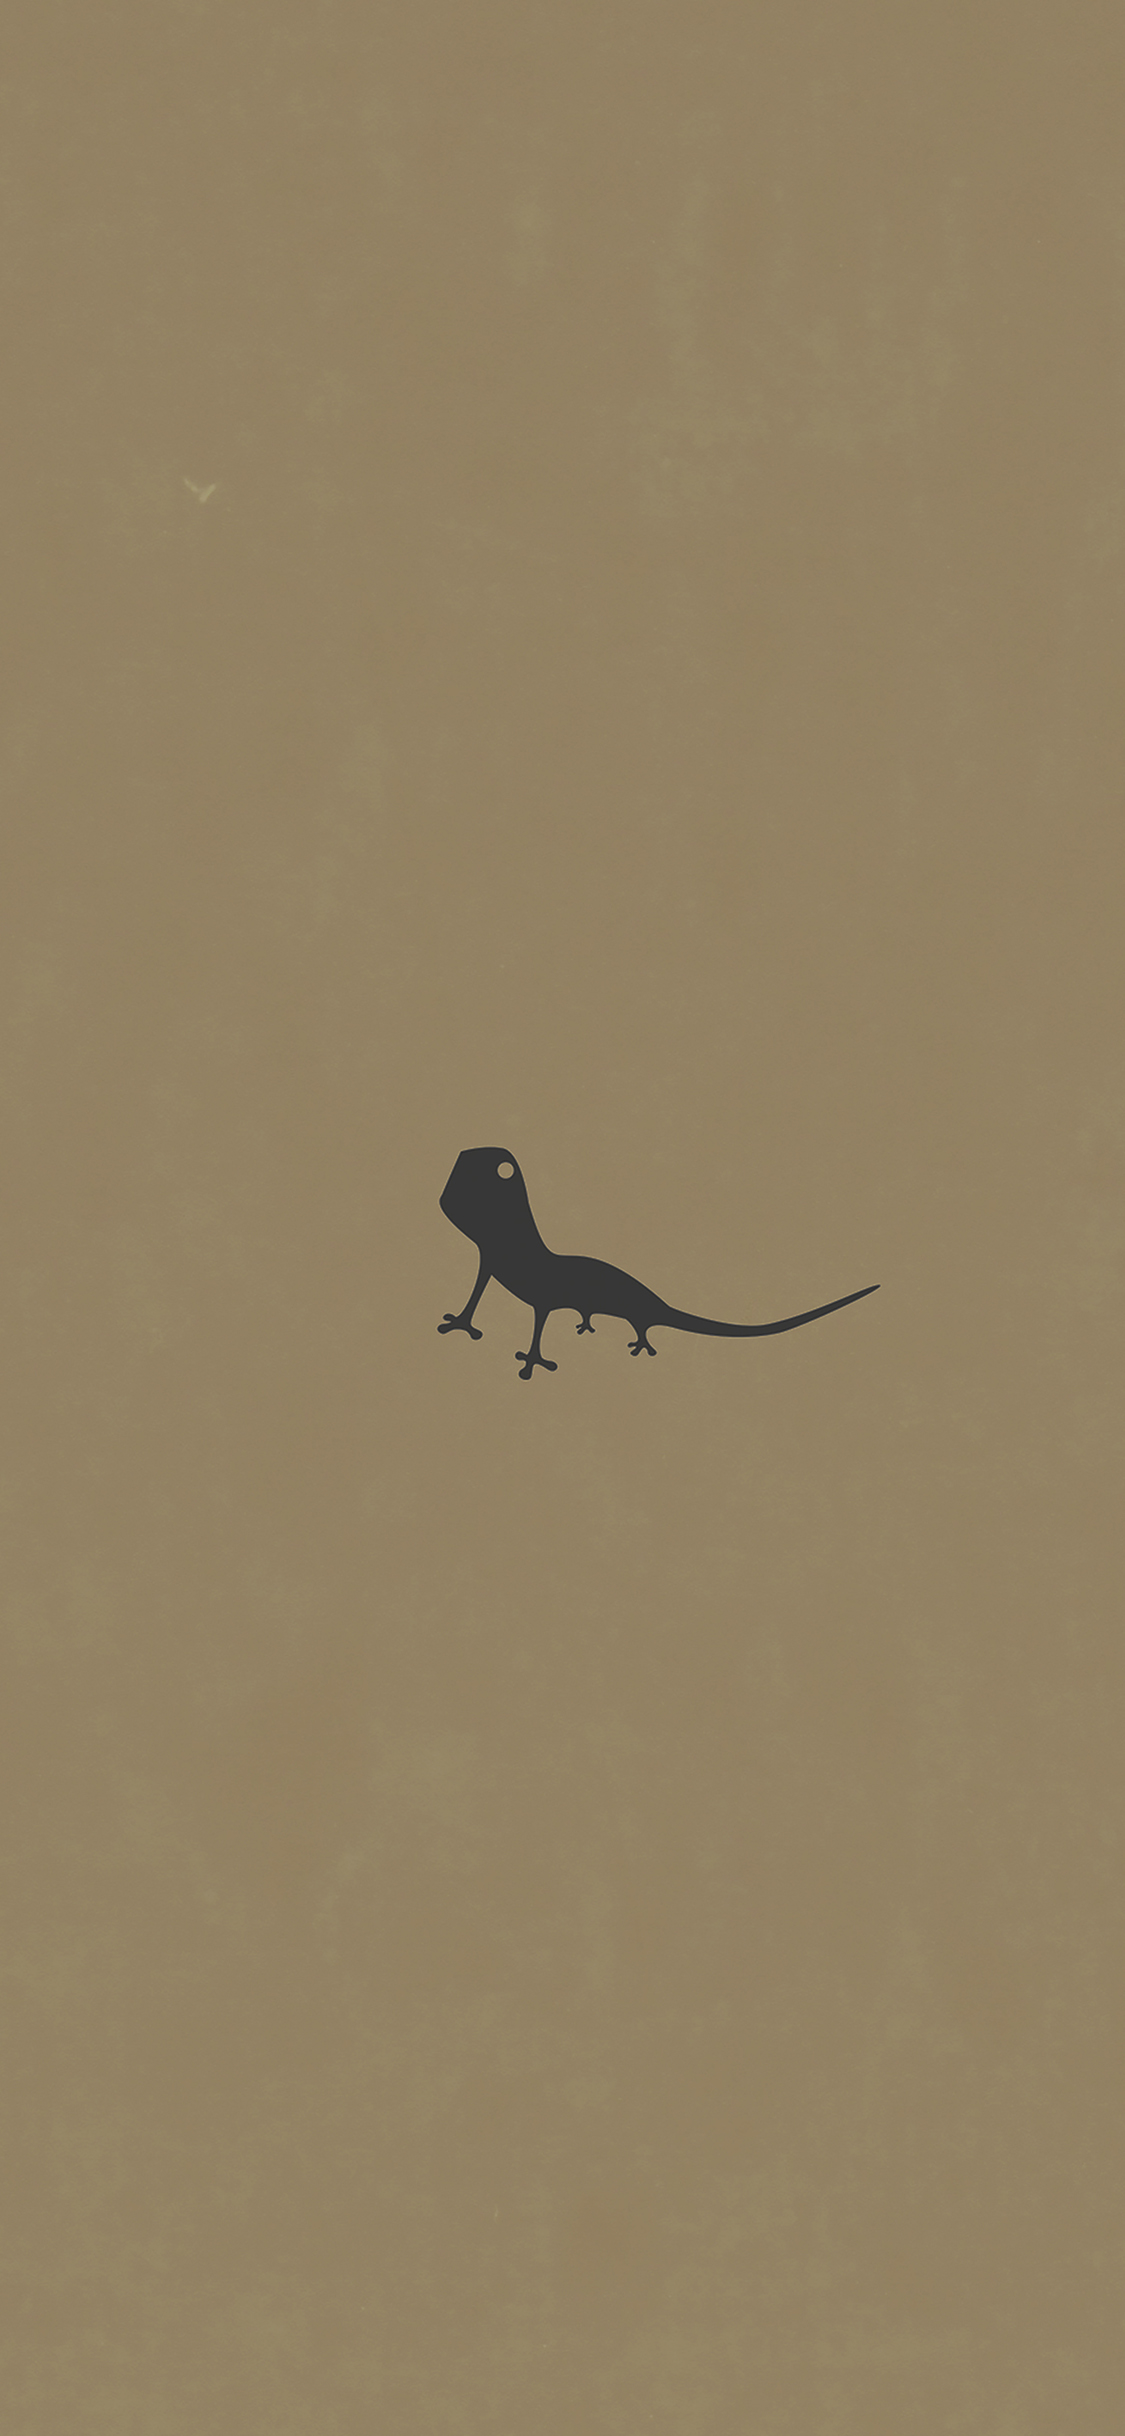 iPhoneXpapers.com-Apple-iPhone-wallpaper-ah56-lizard-brown-animal-minimal-simple-art